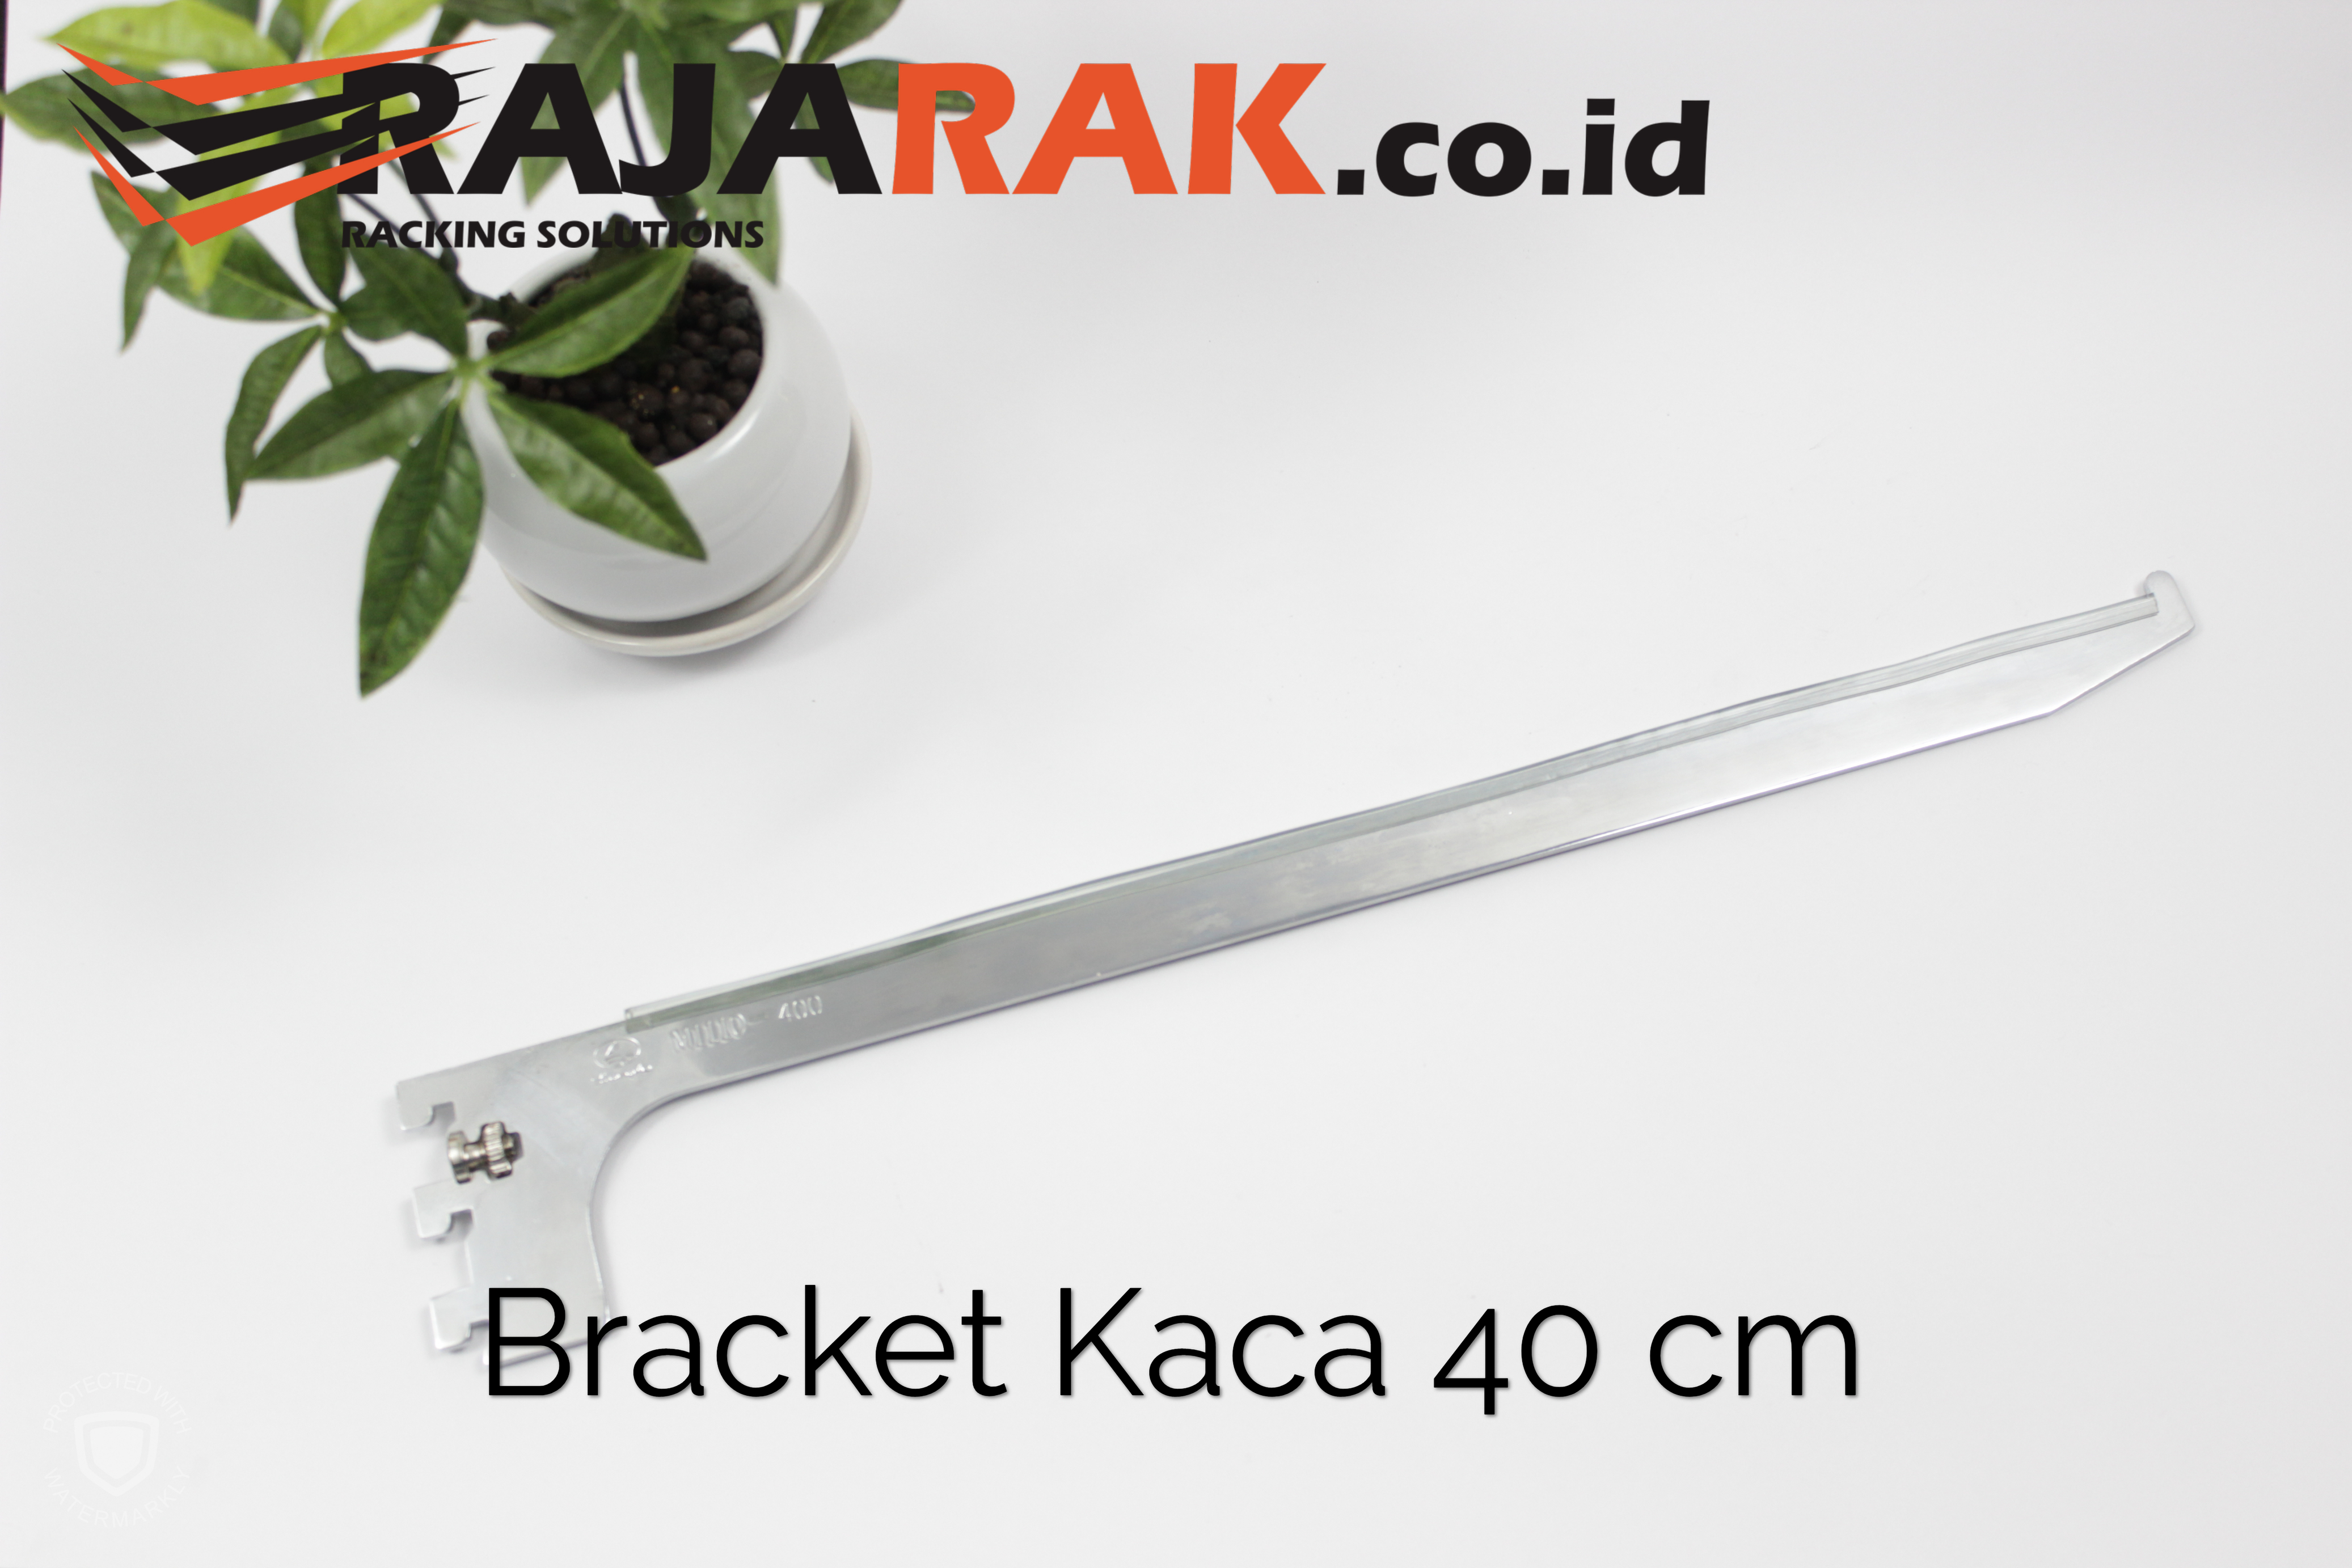 Daun Bracket Kaca 40 cm Tebal 3 mm Warna Chrome